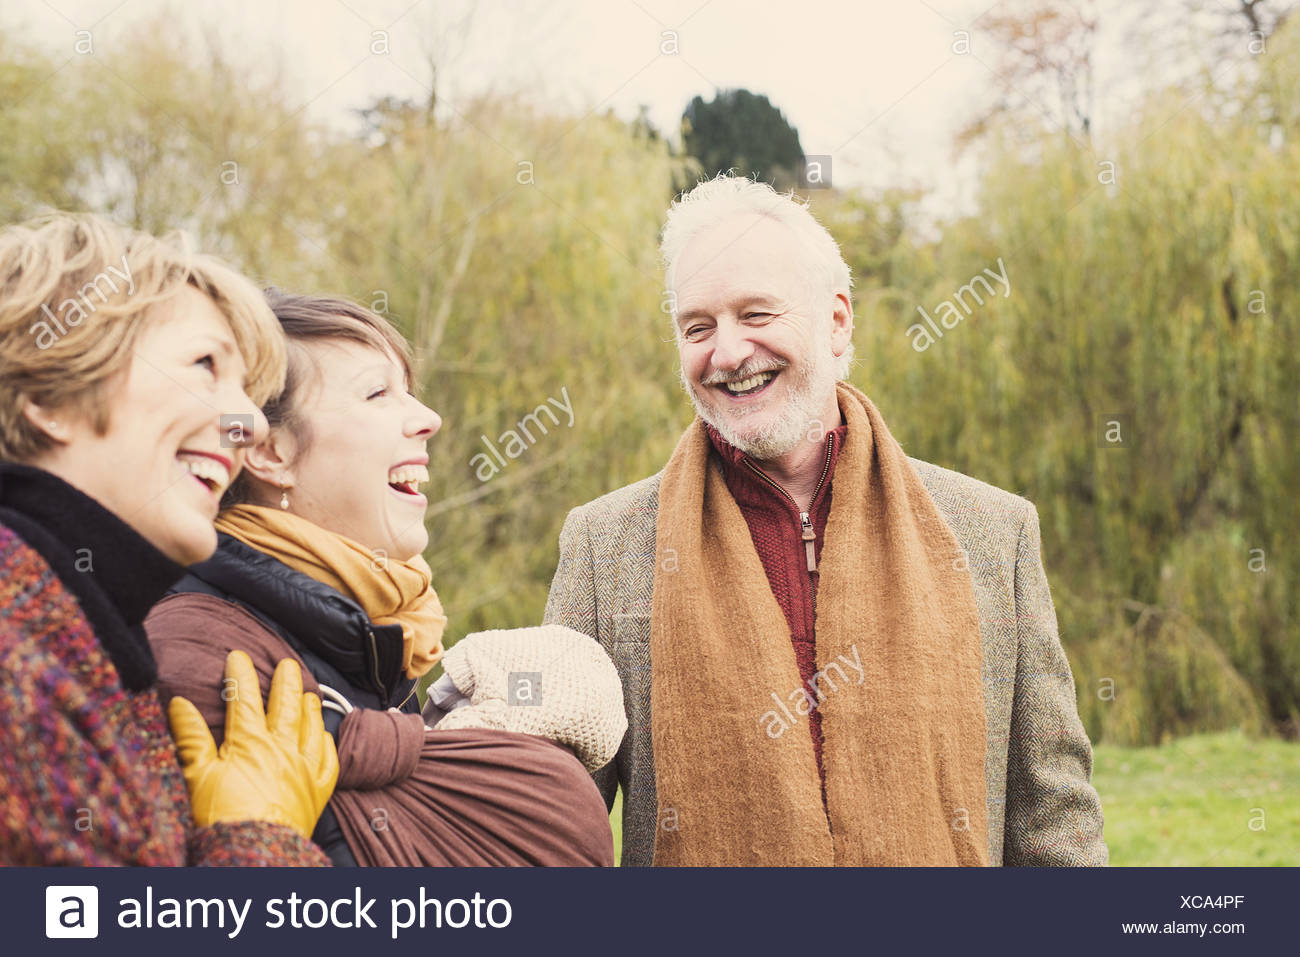 Family laughing Photo Stock